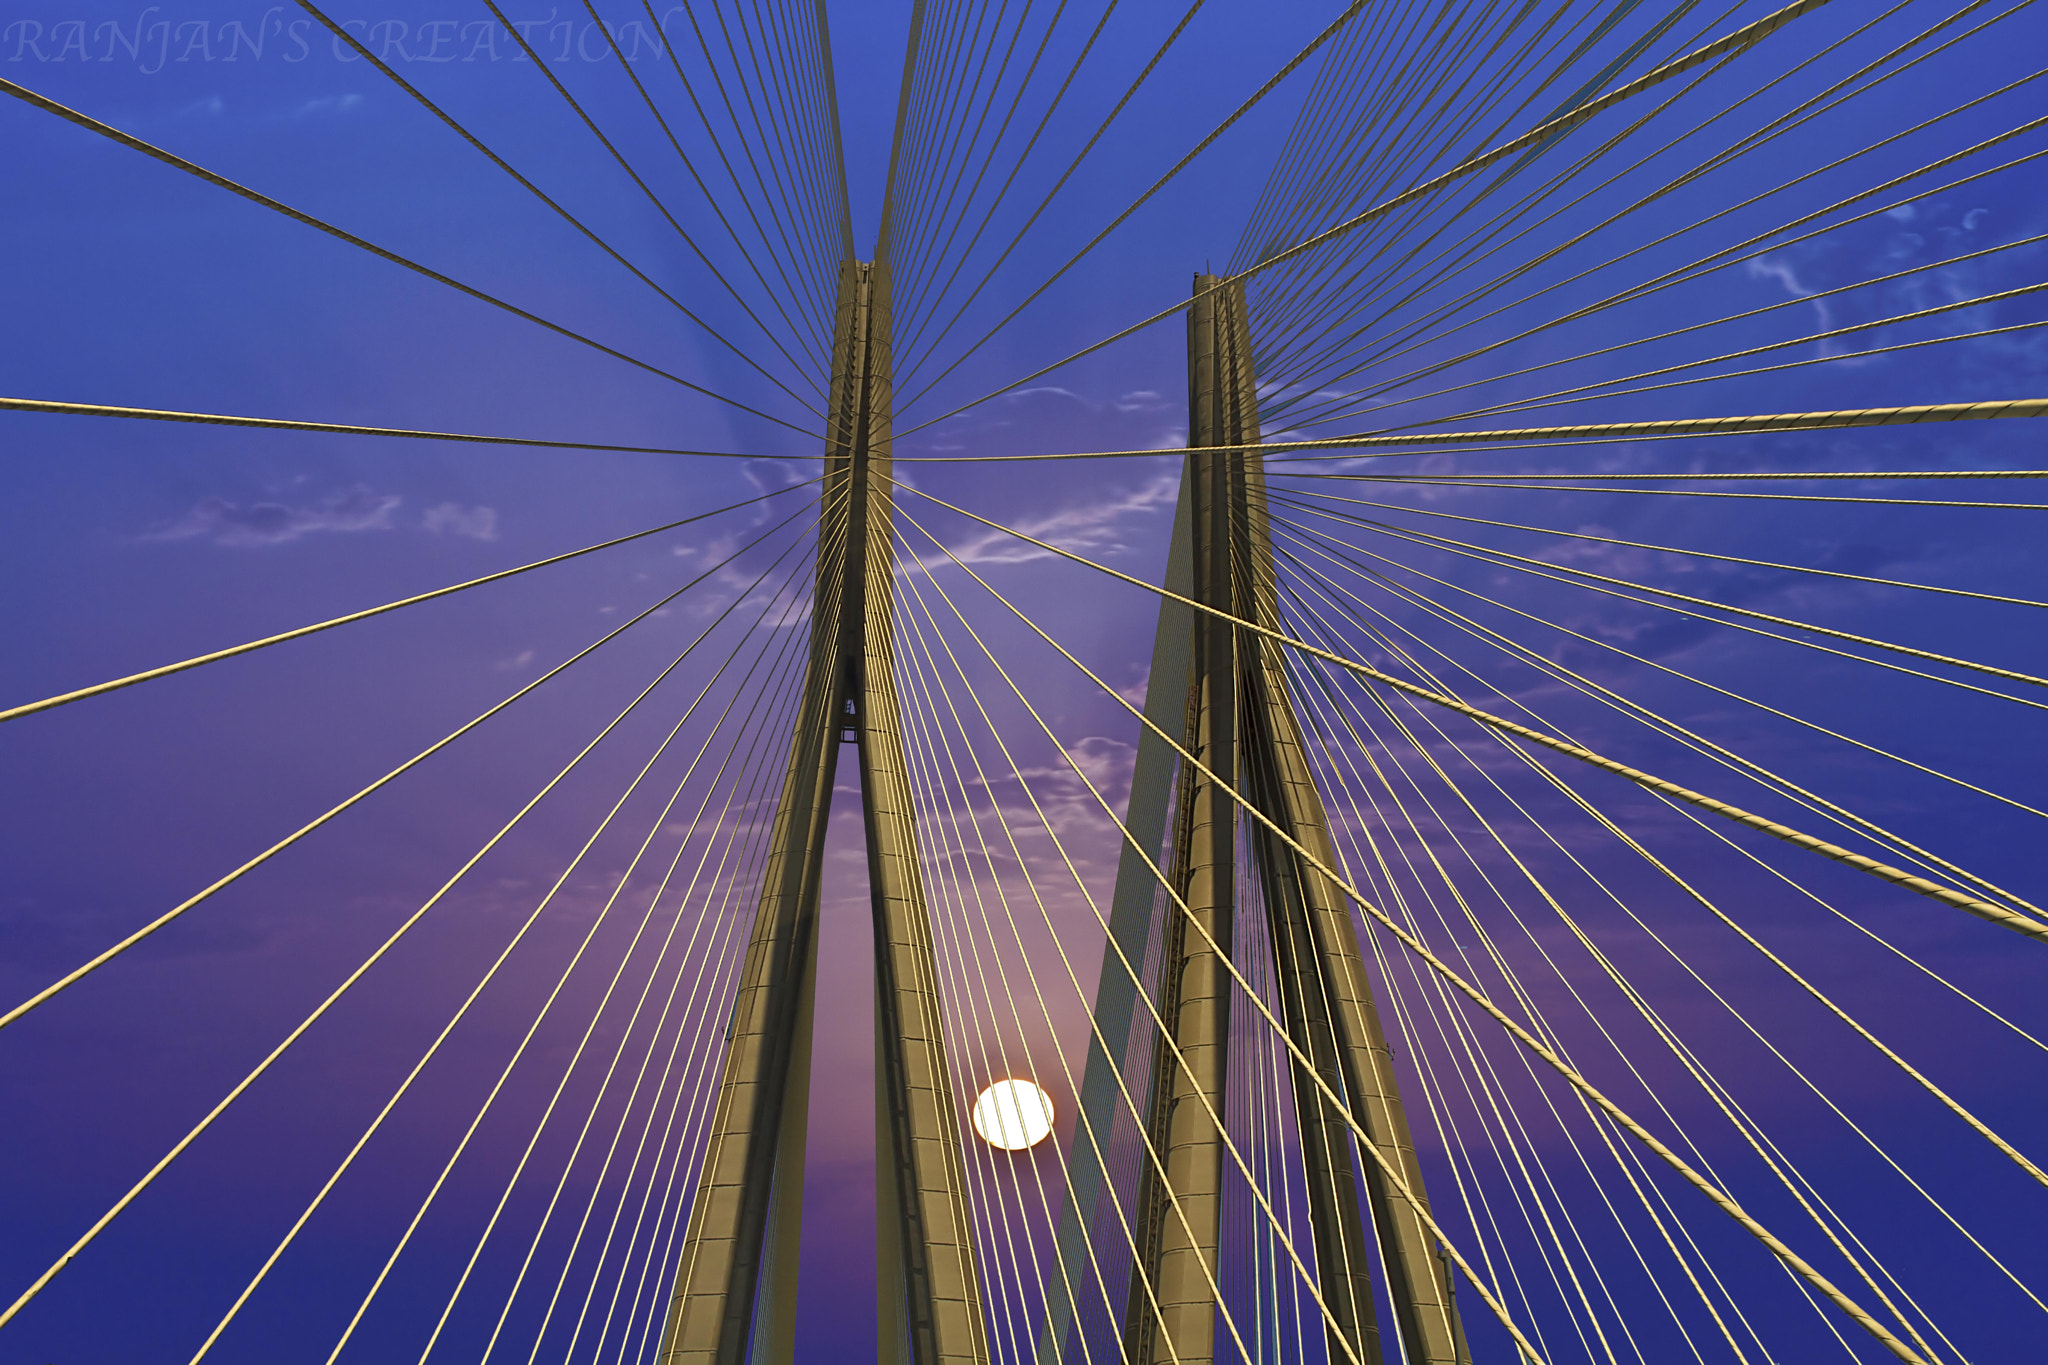 Photograph Skylink Bridge in Mumbai by RANJAN SM on 500px